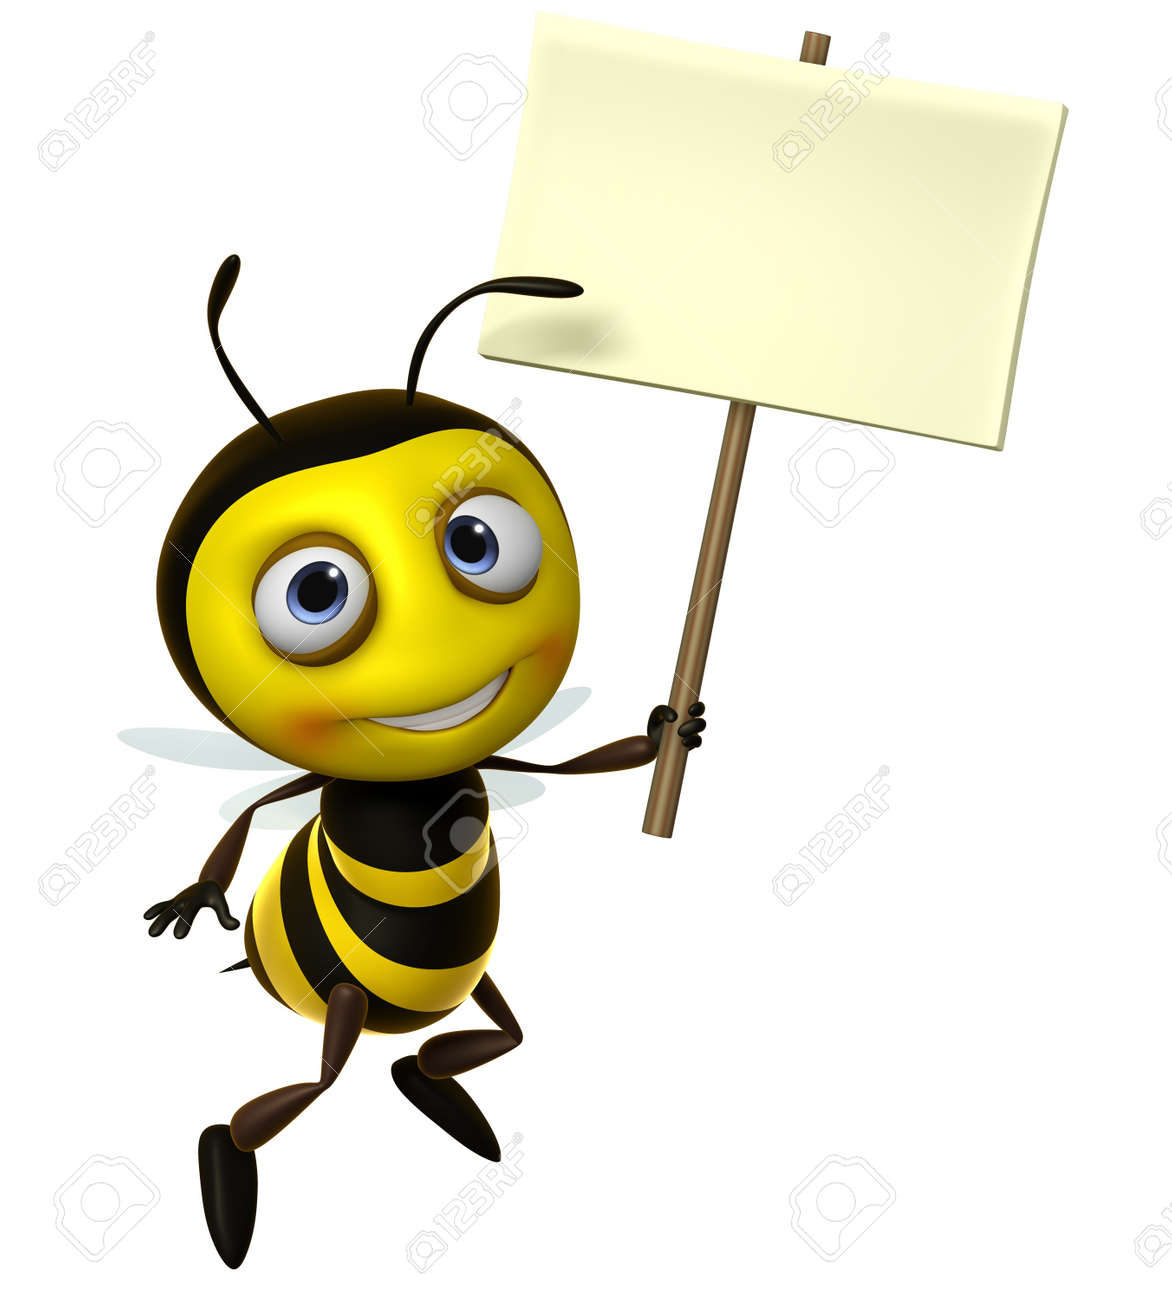 Bumble bee cartoon 3d cute honey bee holding blank